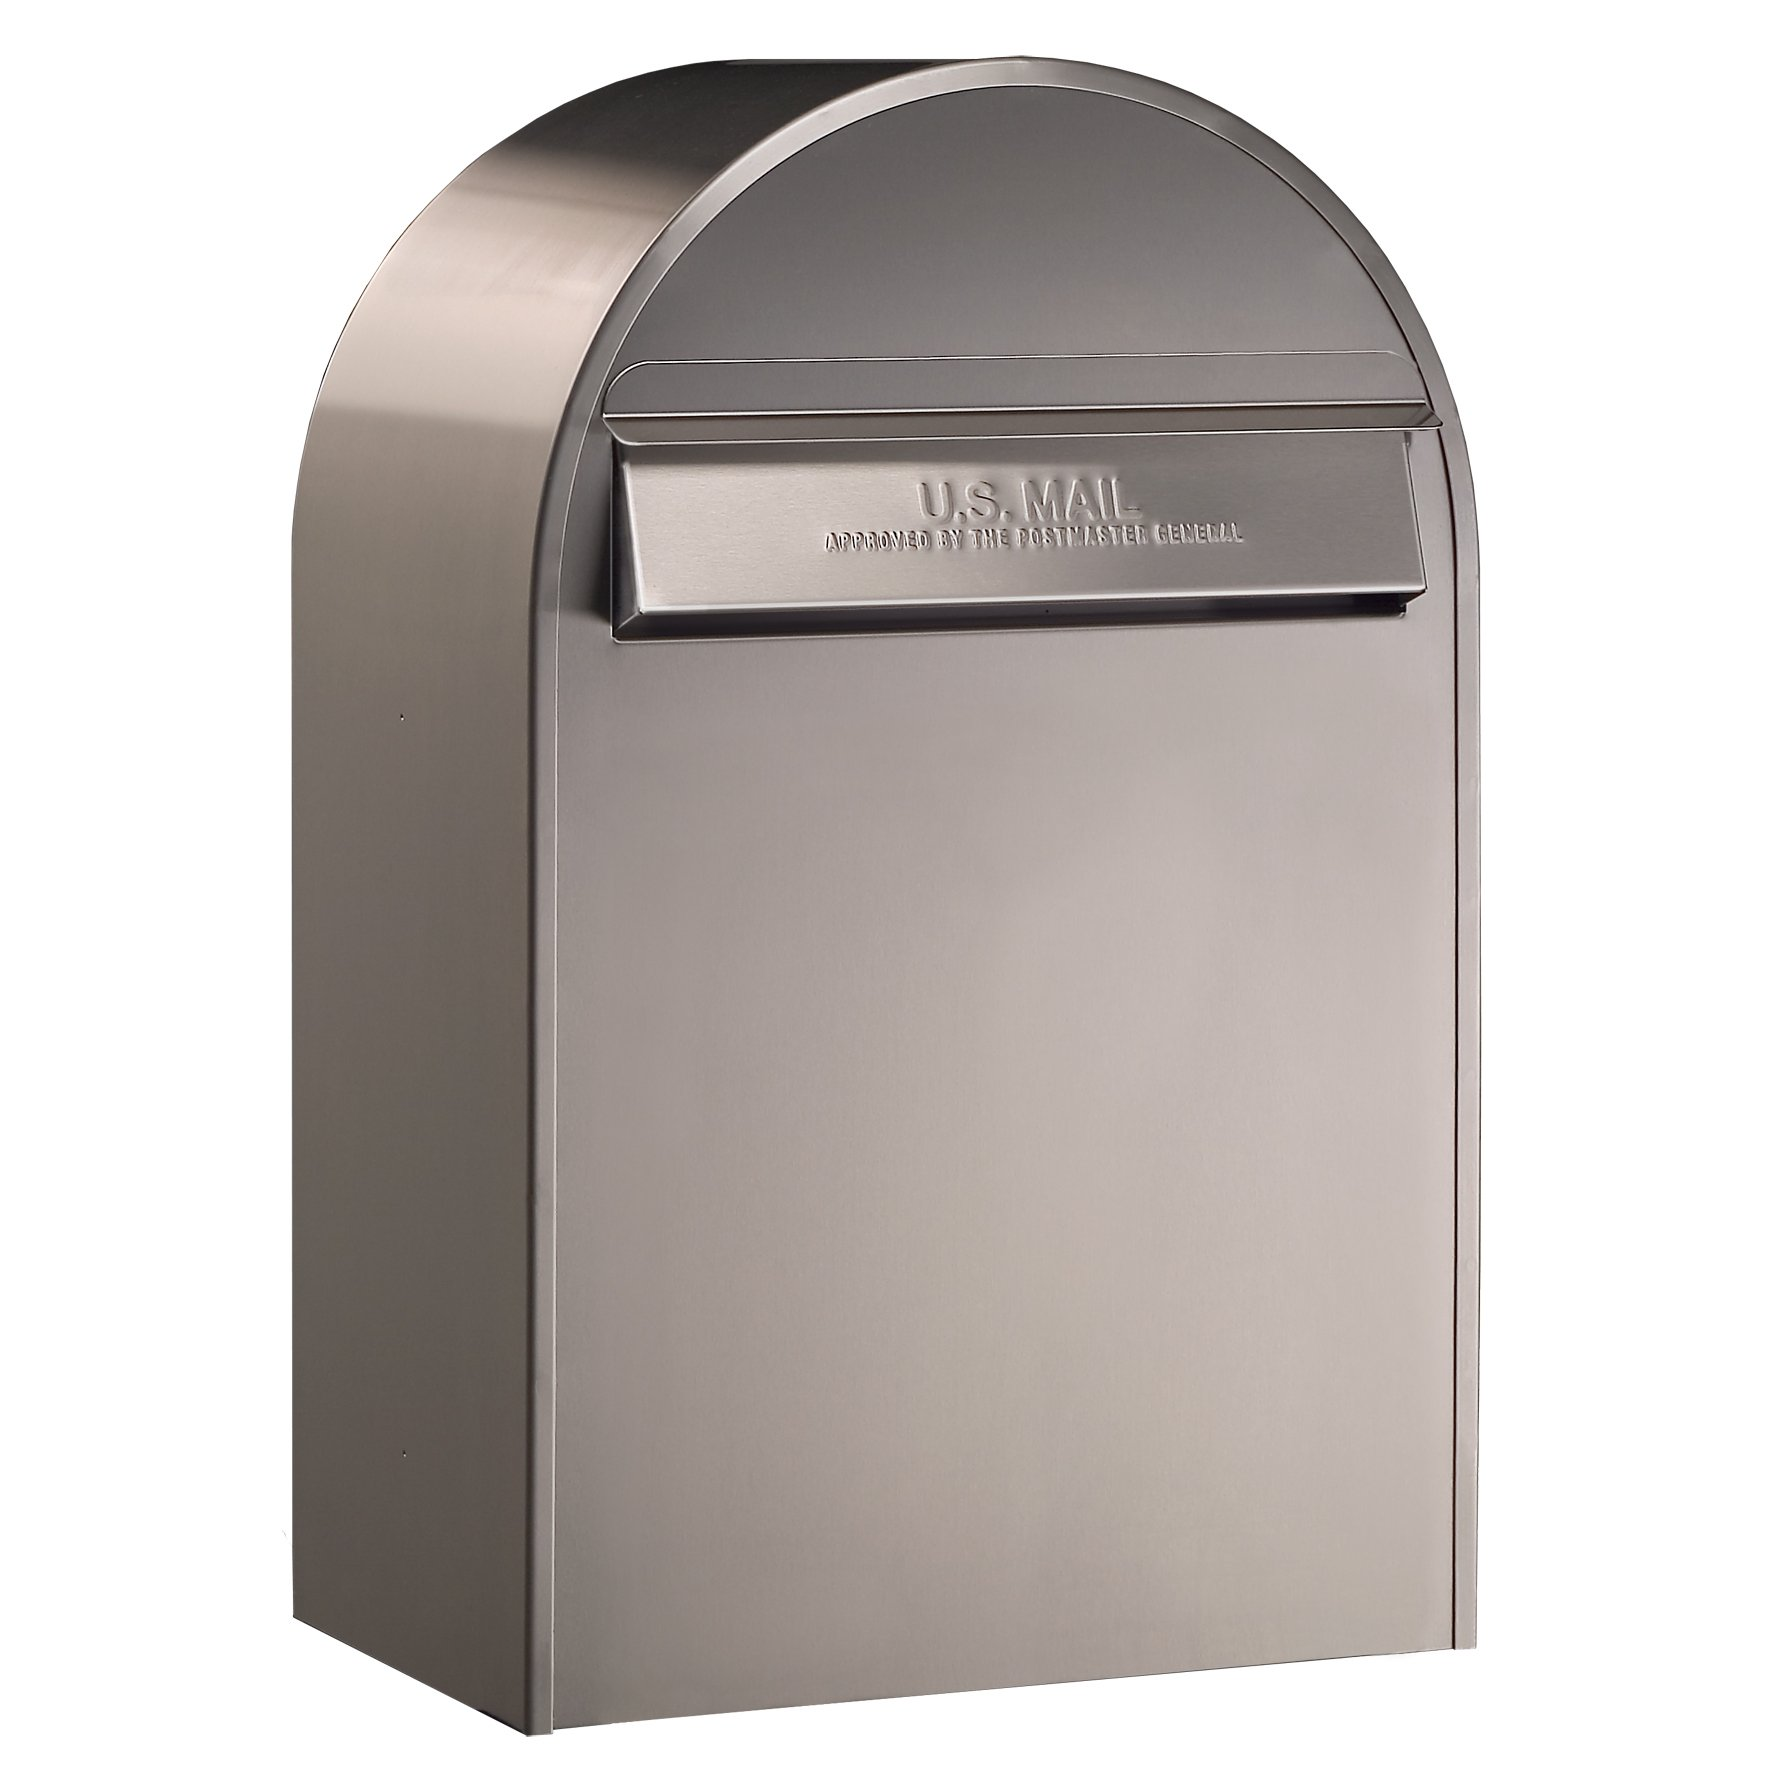 Bobi USPS Wall Mount Mailbox, European Modern Rear Access Lockable Mailbox with Cylinder Lock, 2 Keys Included   Heavy Duty Stainless Steel Letter Drop Box (Classic B-Stainless Steel)